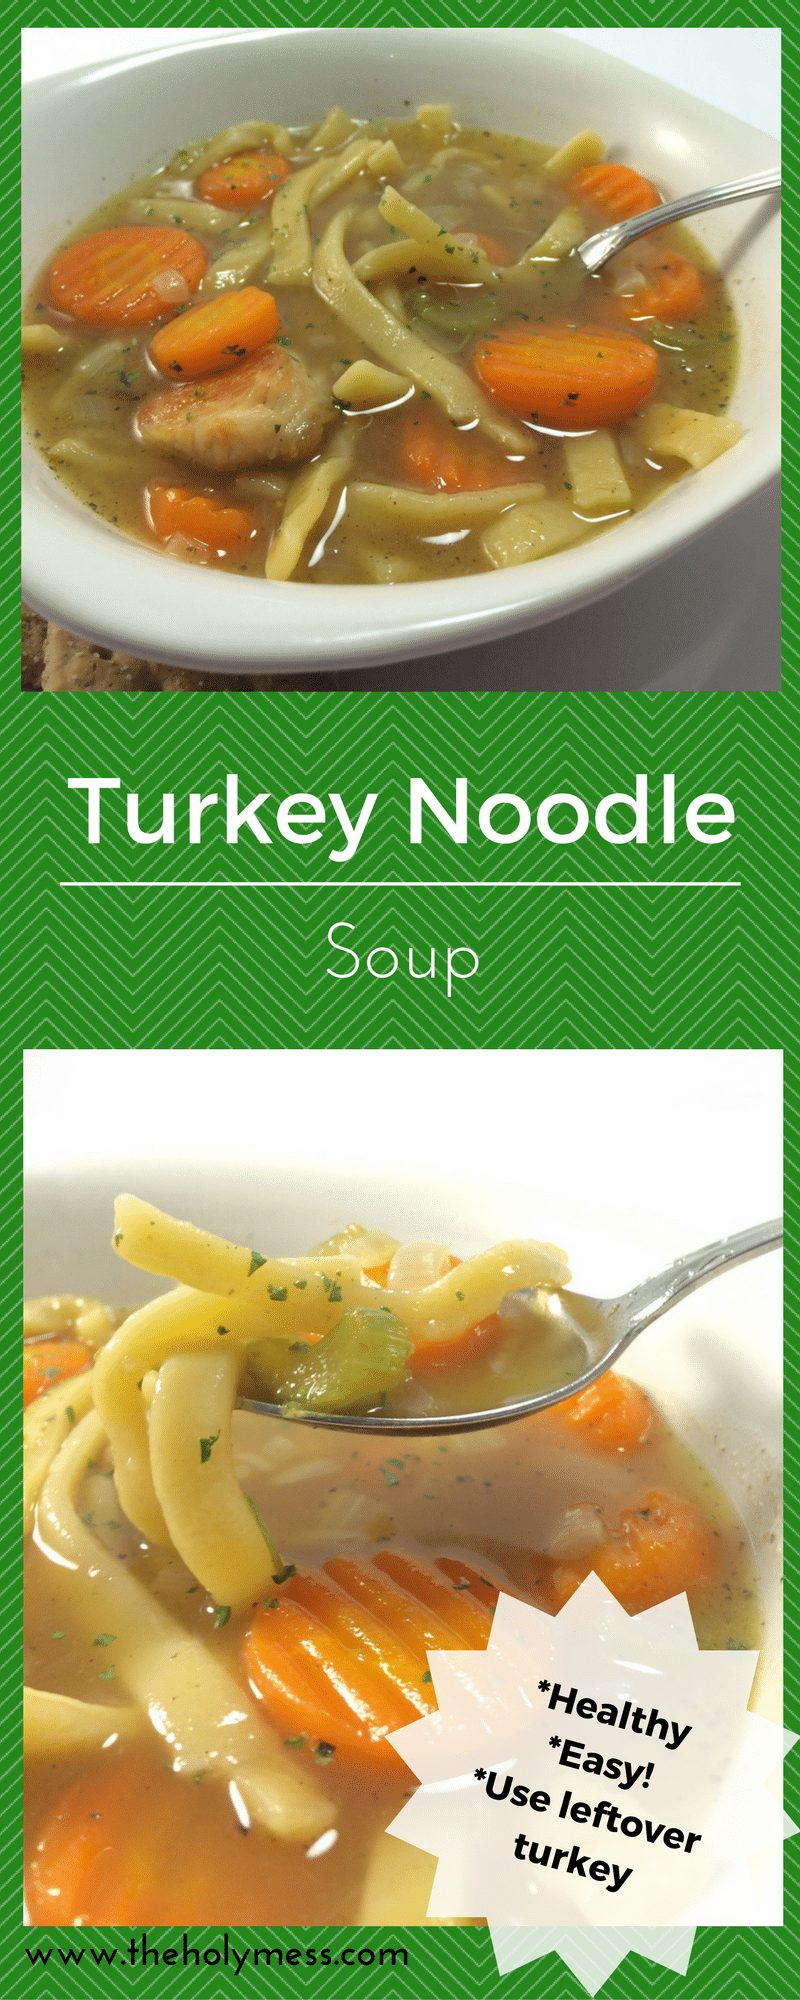 Turkey Noodle Soup Recipe|The Holy Mess